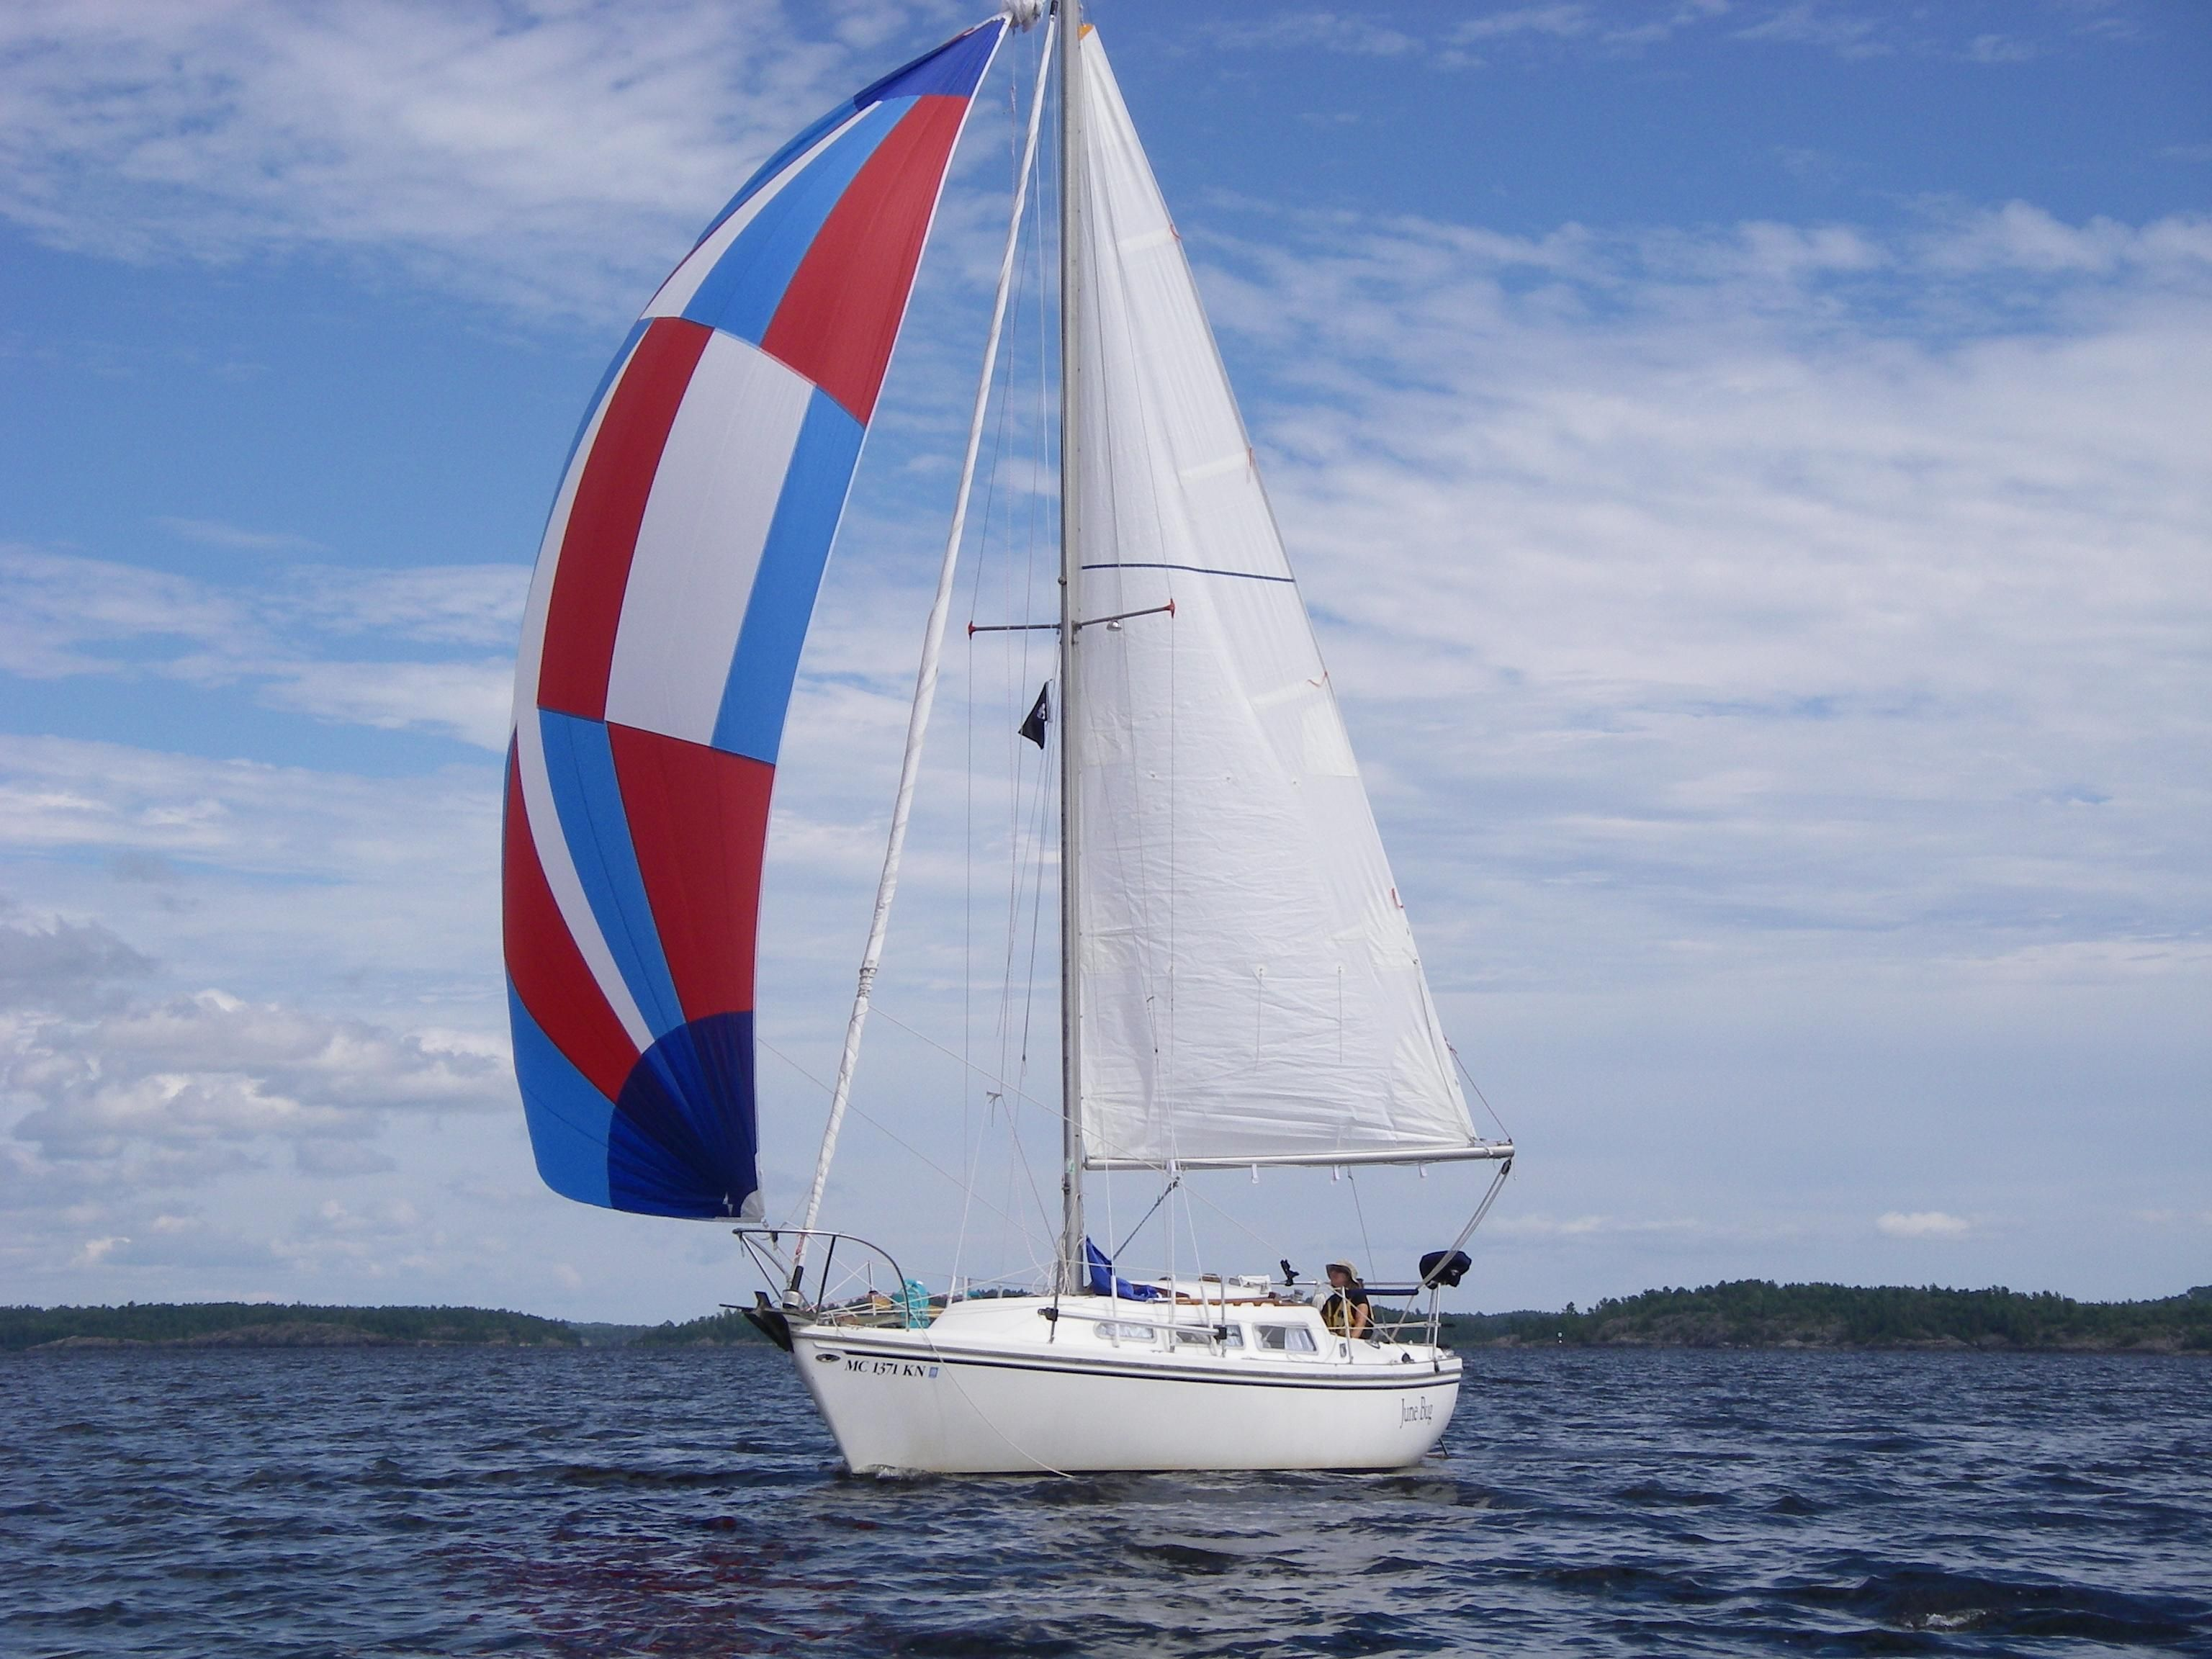 1977 Catalina 27 Sail Boat For Sale - www yachtworld com